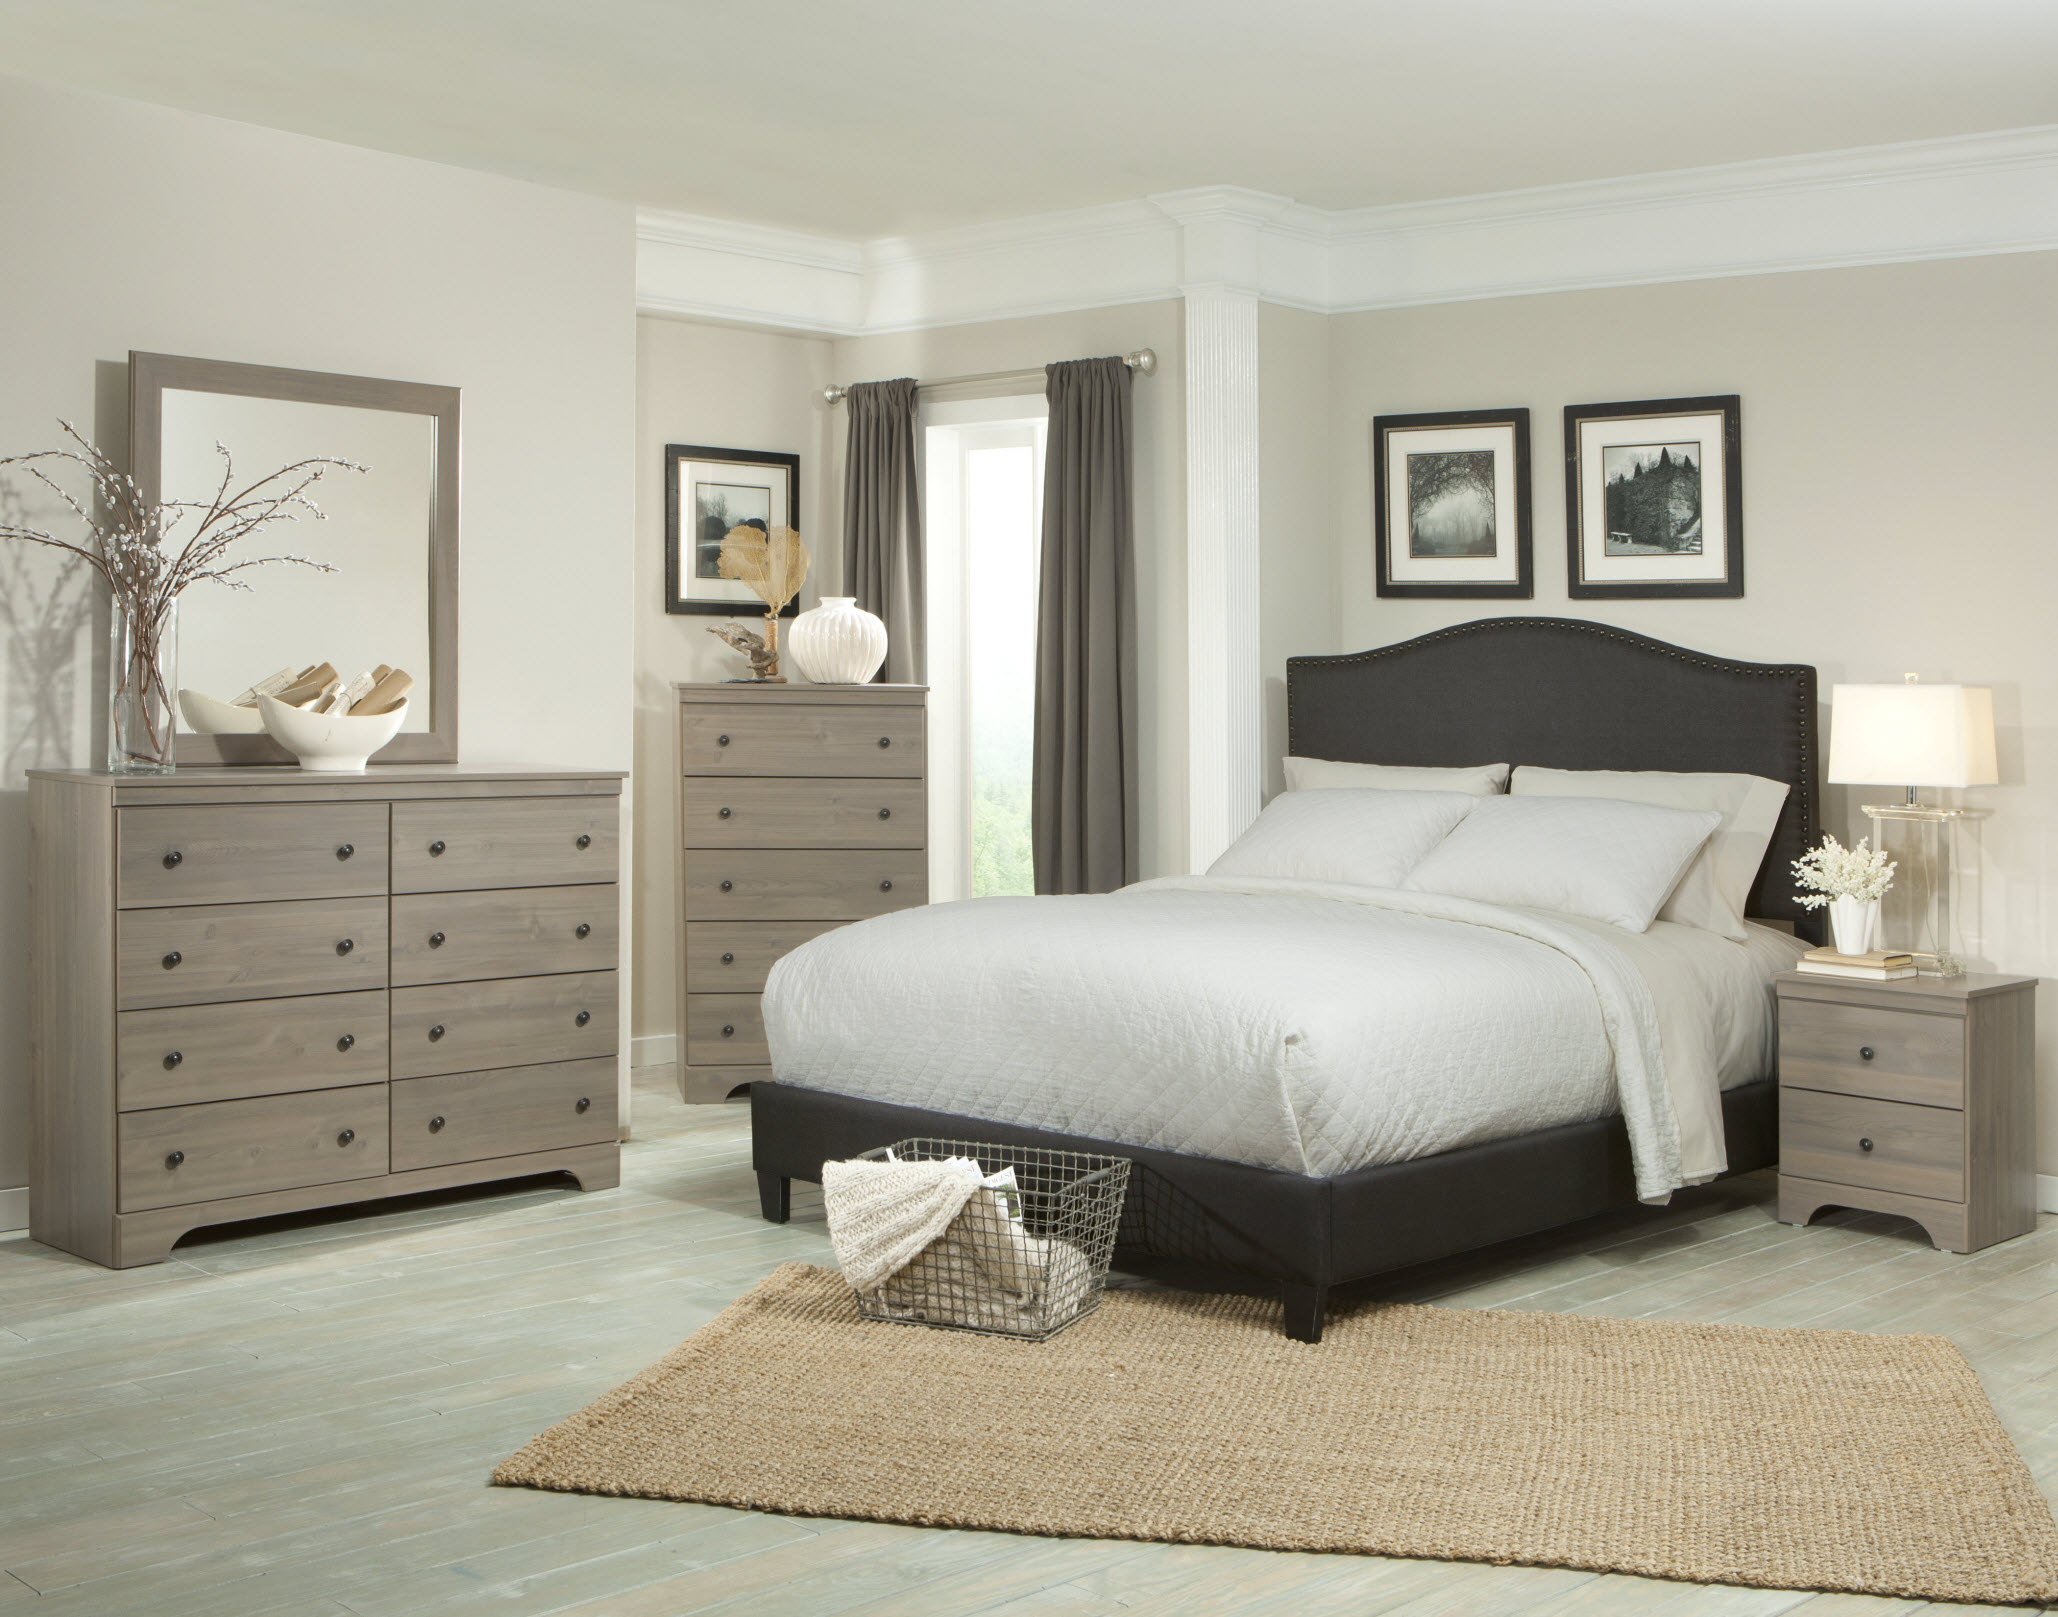 Image of: Grey Bedroom Dressers on Sale